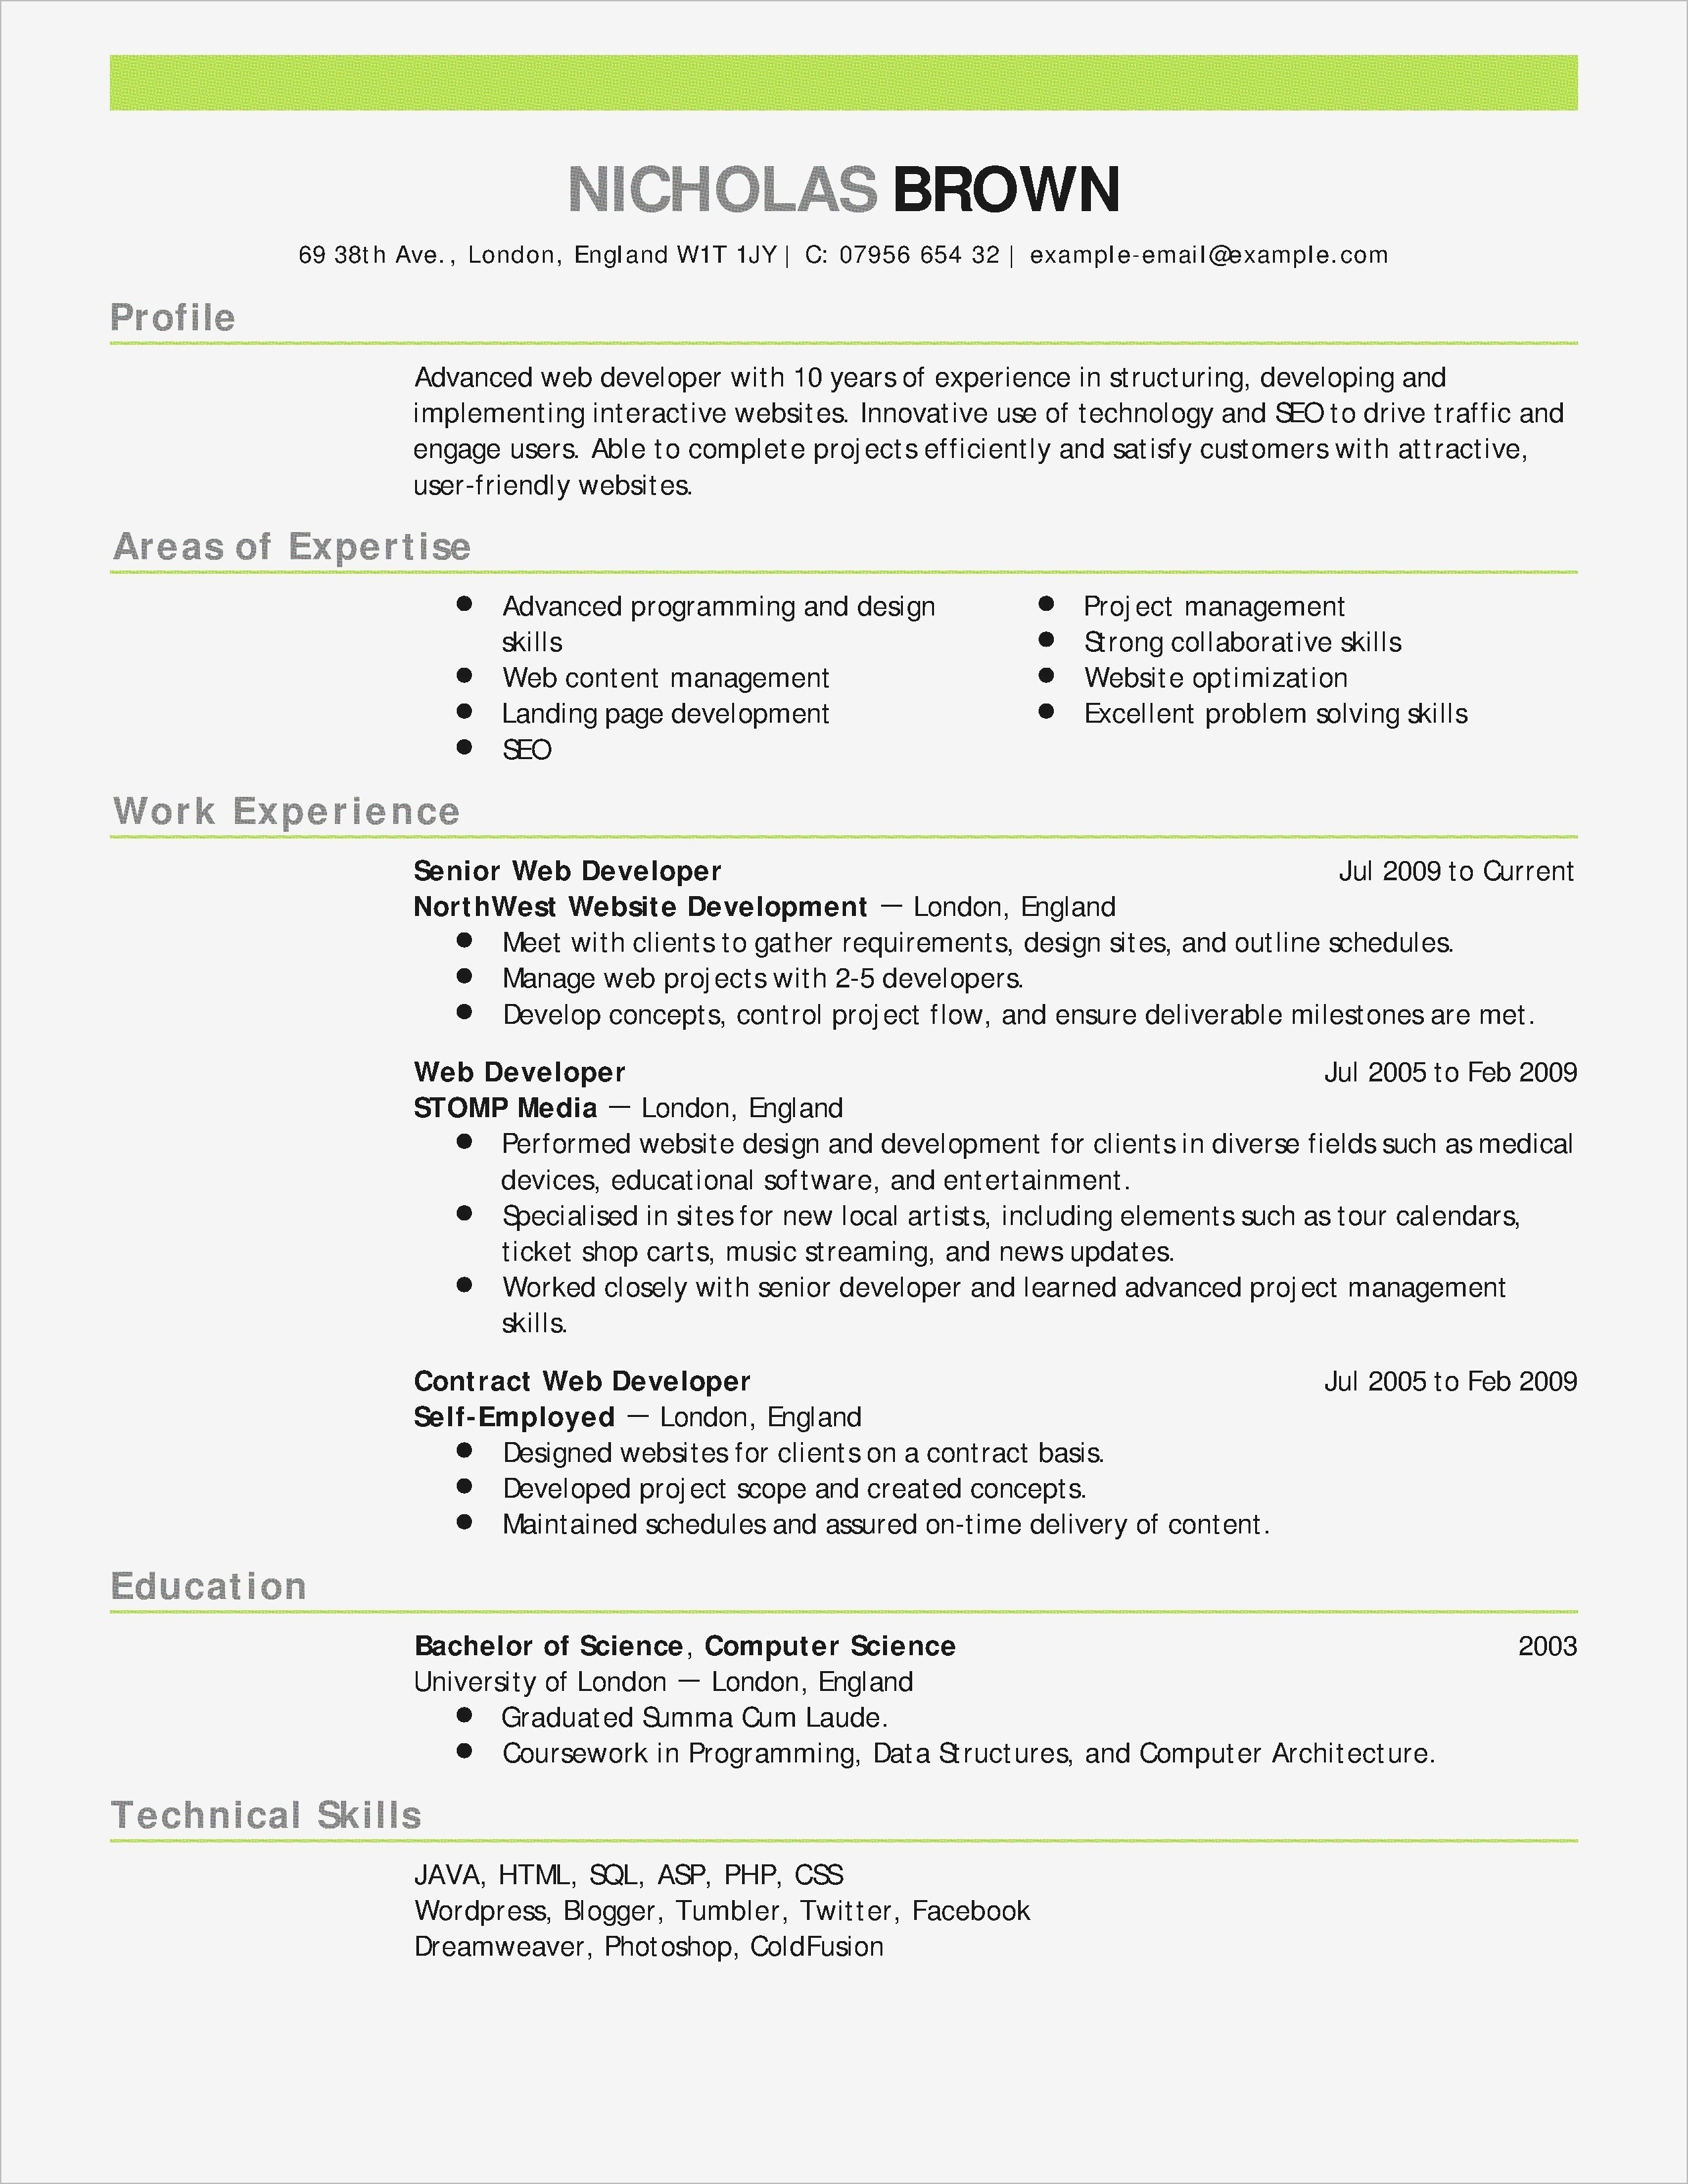 Teacher Resume Template Microsoft Word - 25 Lovely Teacher Resume Skills